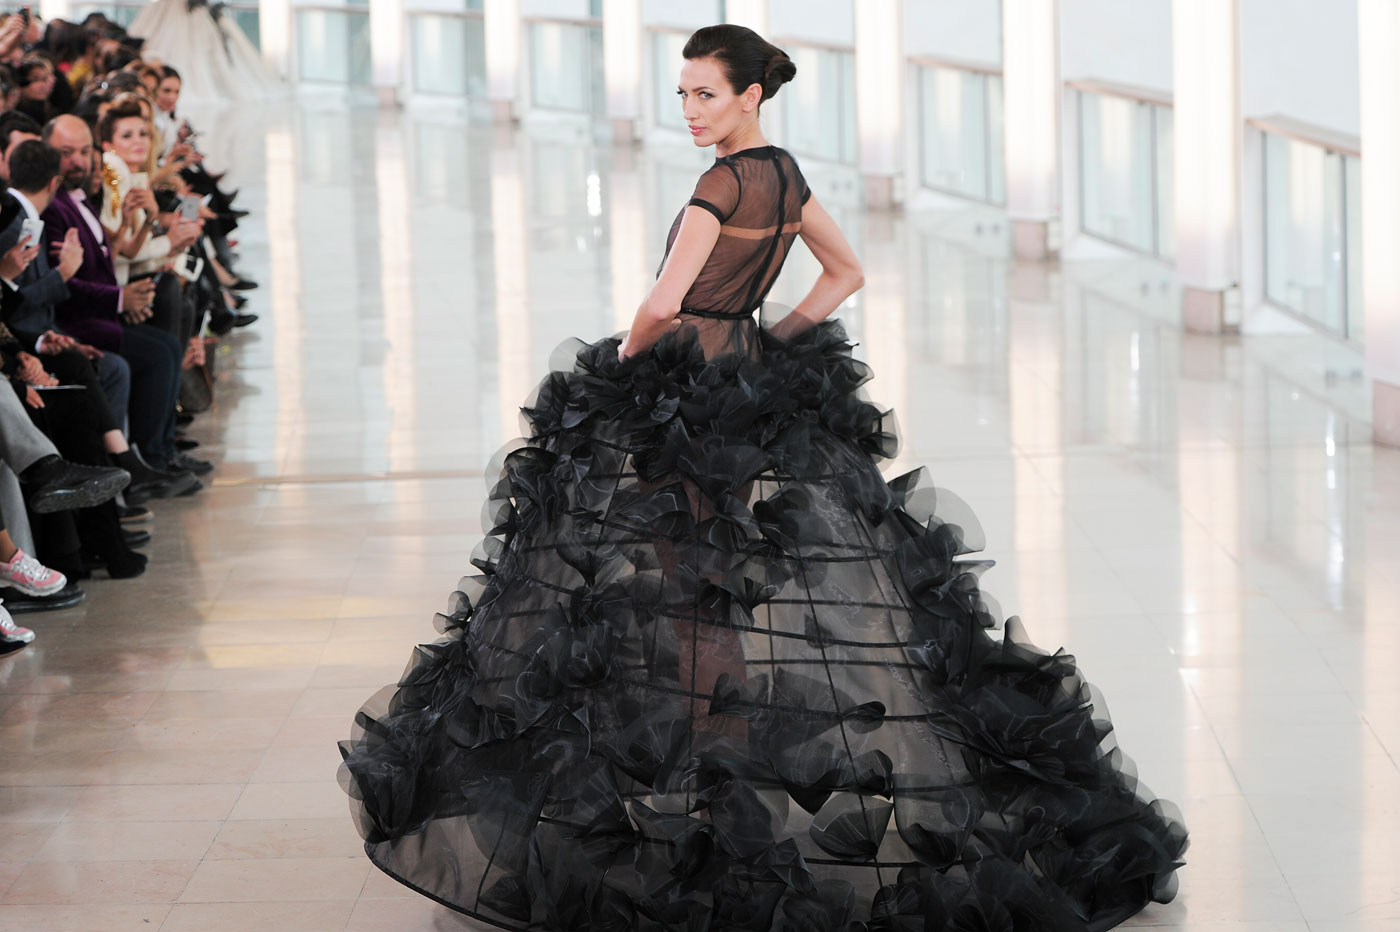 stephane-rolland-fashion-runway-show-haute-couture-paris-spring-2015-the-impression-65